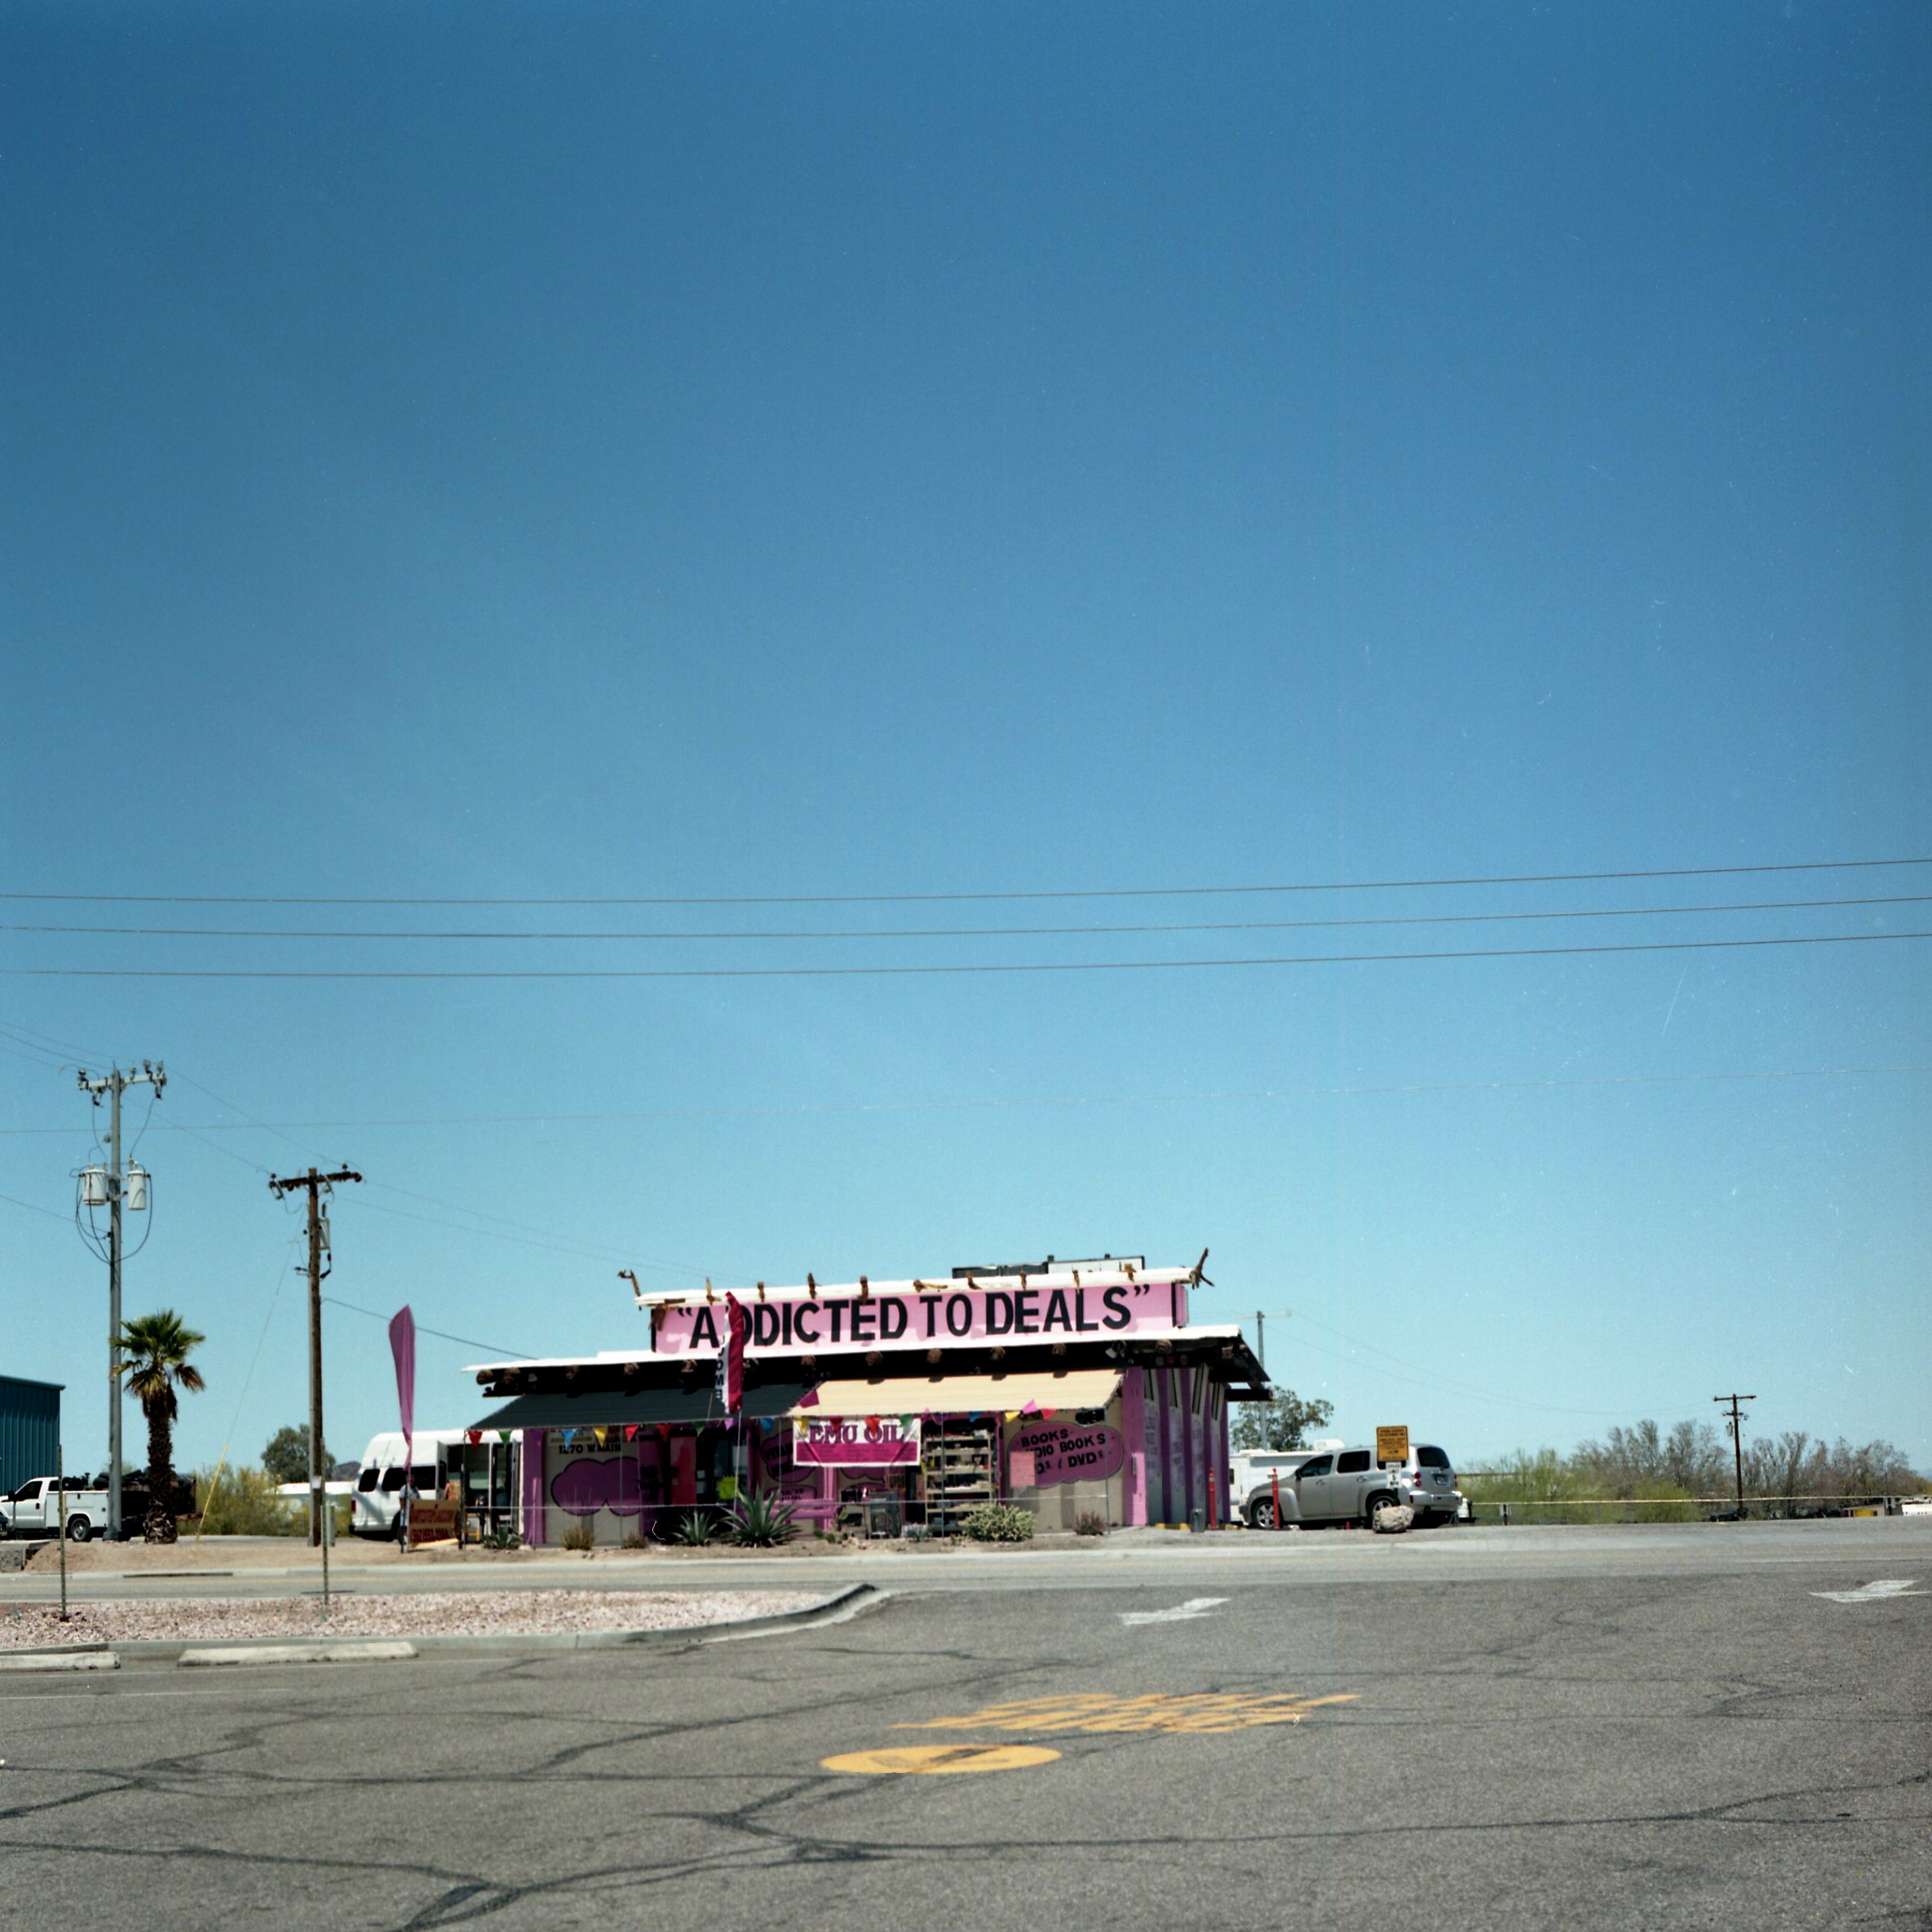 Gioia de Bruijn, Addicted to deals, Arizona, 2016, c- print, 70 x 70 cm